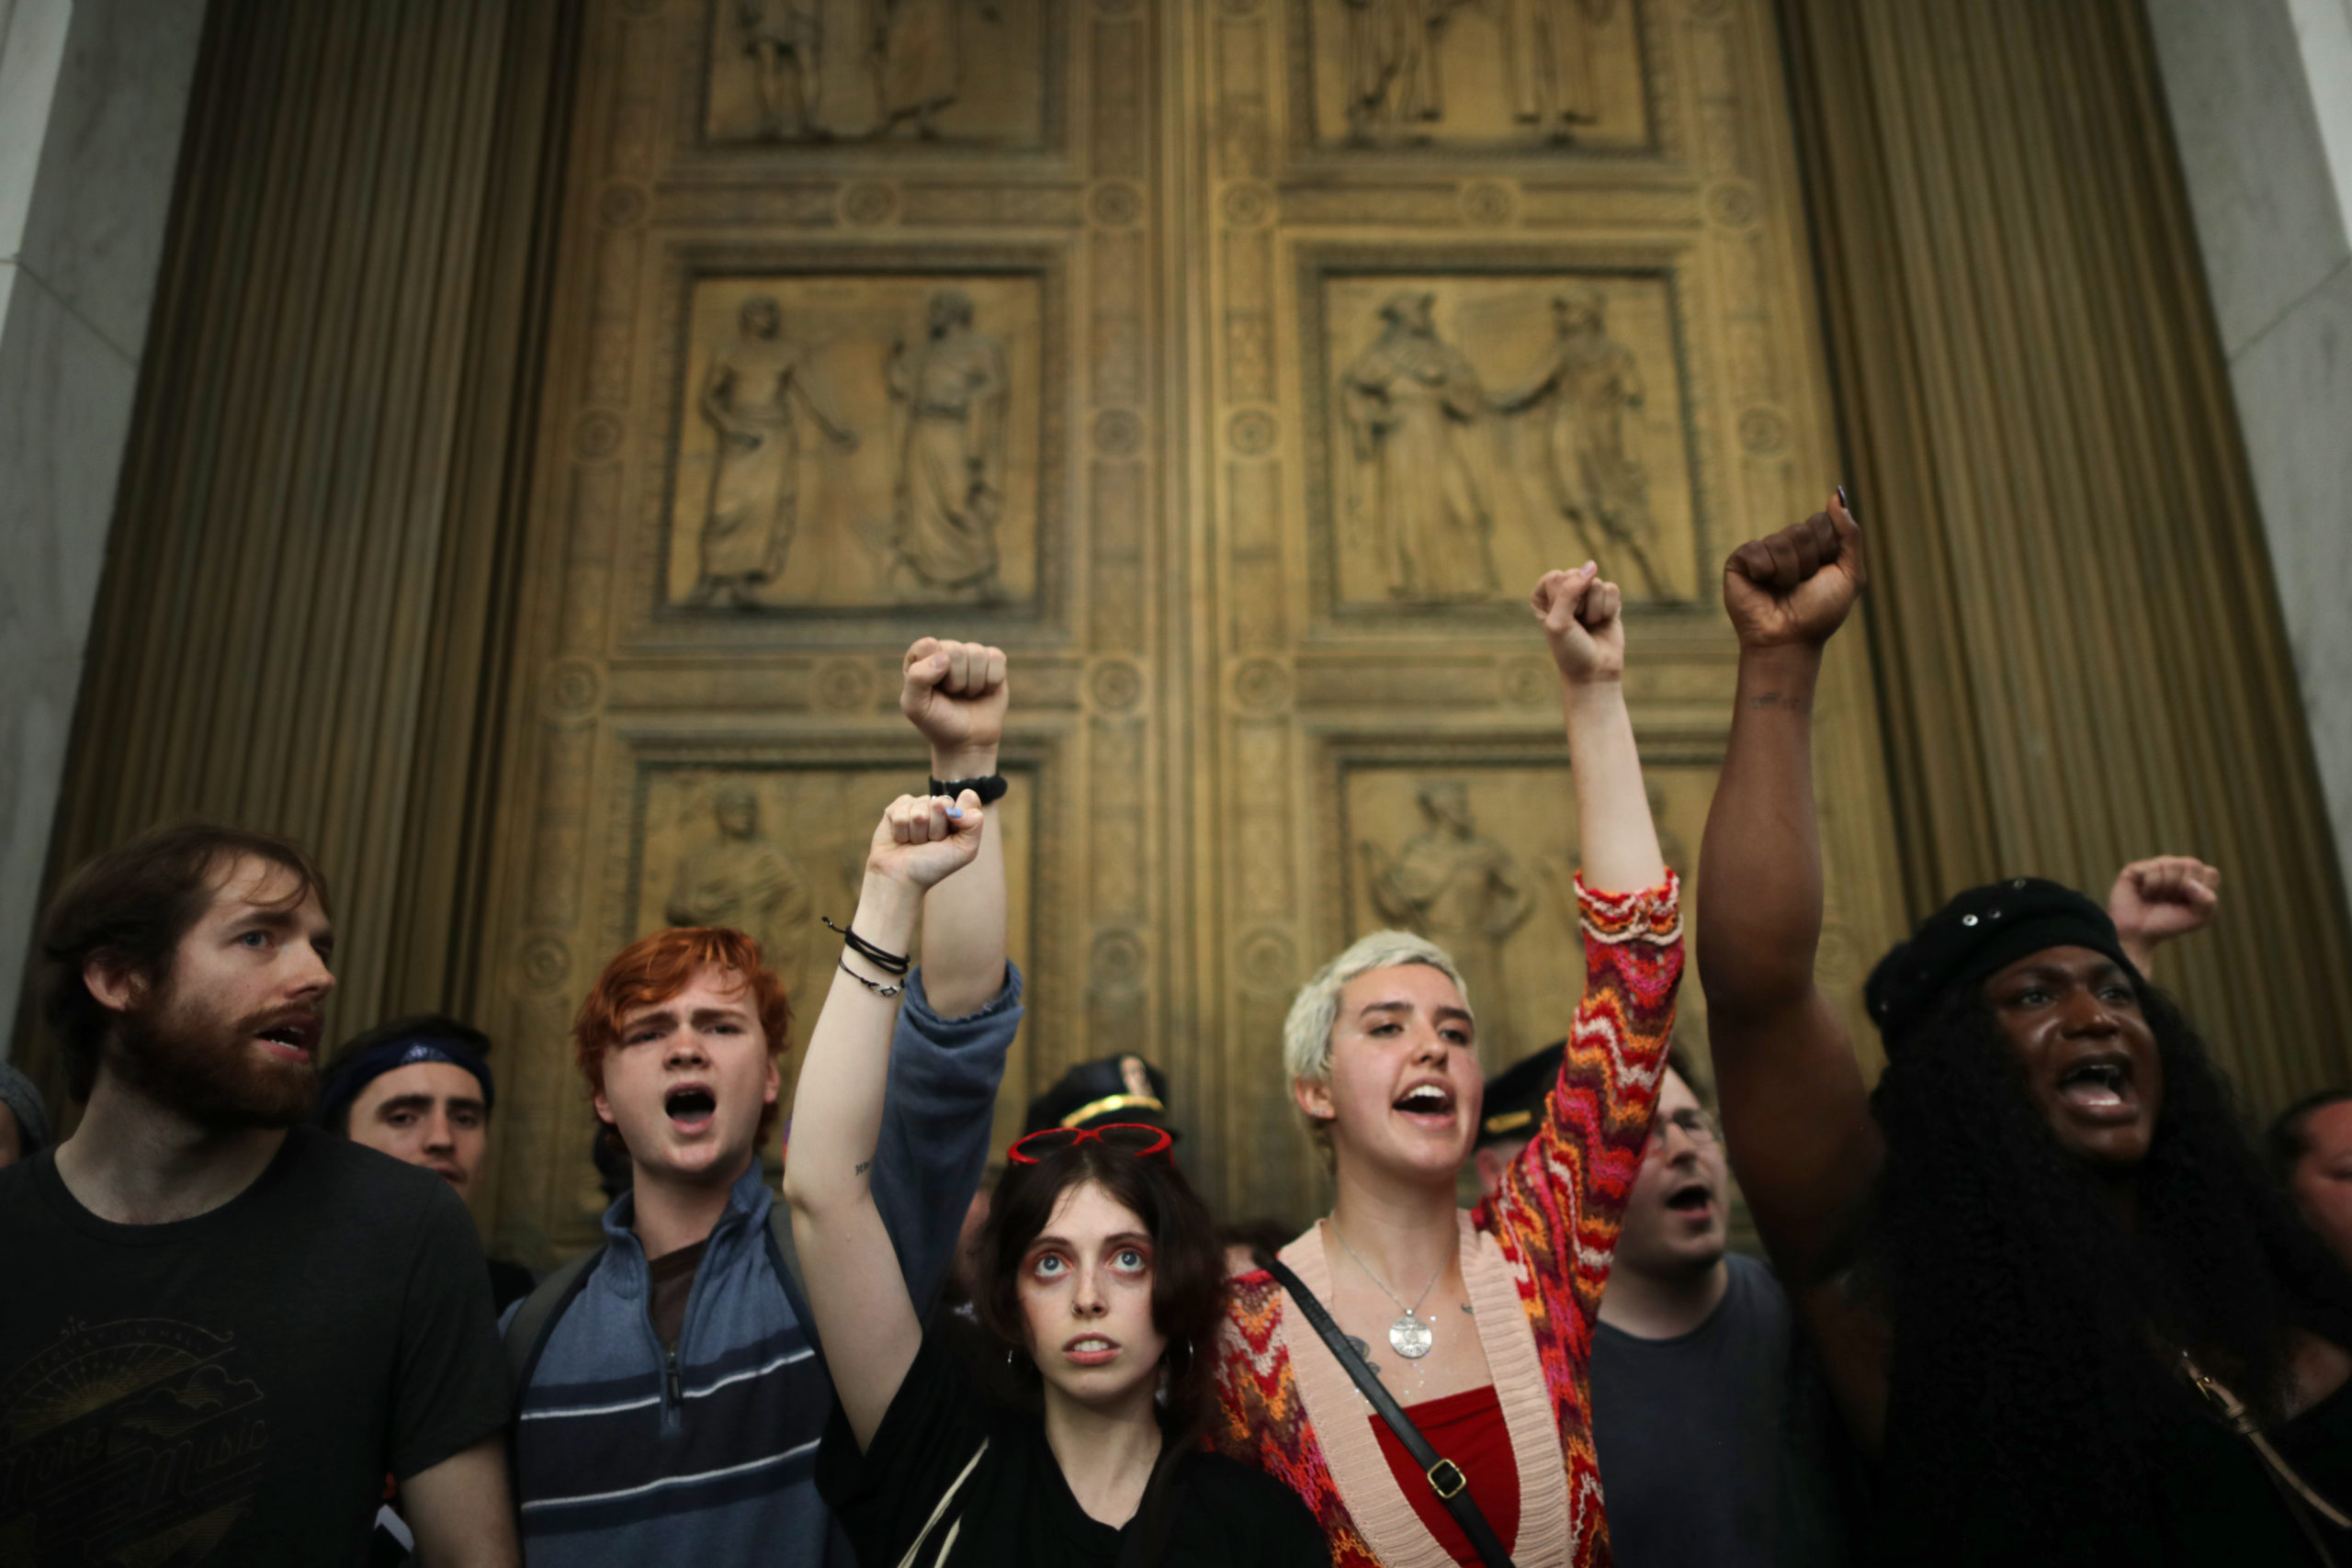 WASHINGTON, DC - OCTOBER 06: After overrunning police barricades, protesters chant as they block the doors to the U.S. Supreme Court while demonstrating against the confirmation of Associate Justice Brett Kavanaugh October 06, 2018 in Washington, DC. The protesters marched up to the doors of the court as Kavanaugh was inside taking his oath. (Photo by Chip Somodevilla/Getty Images)